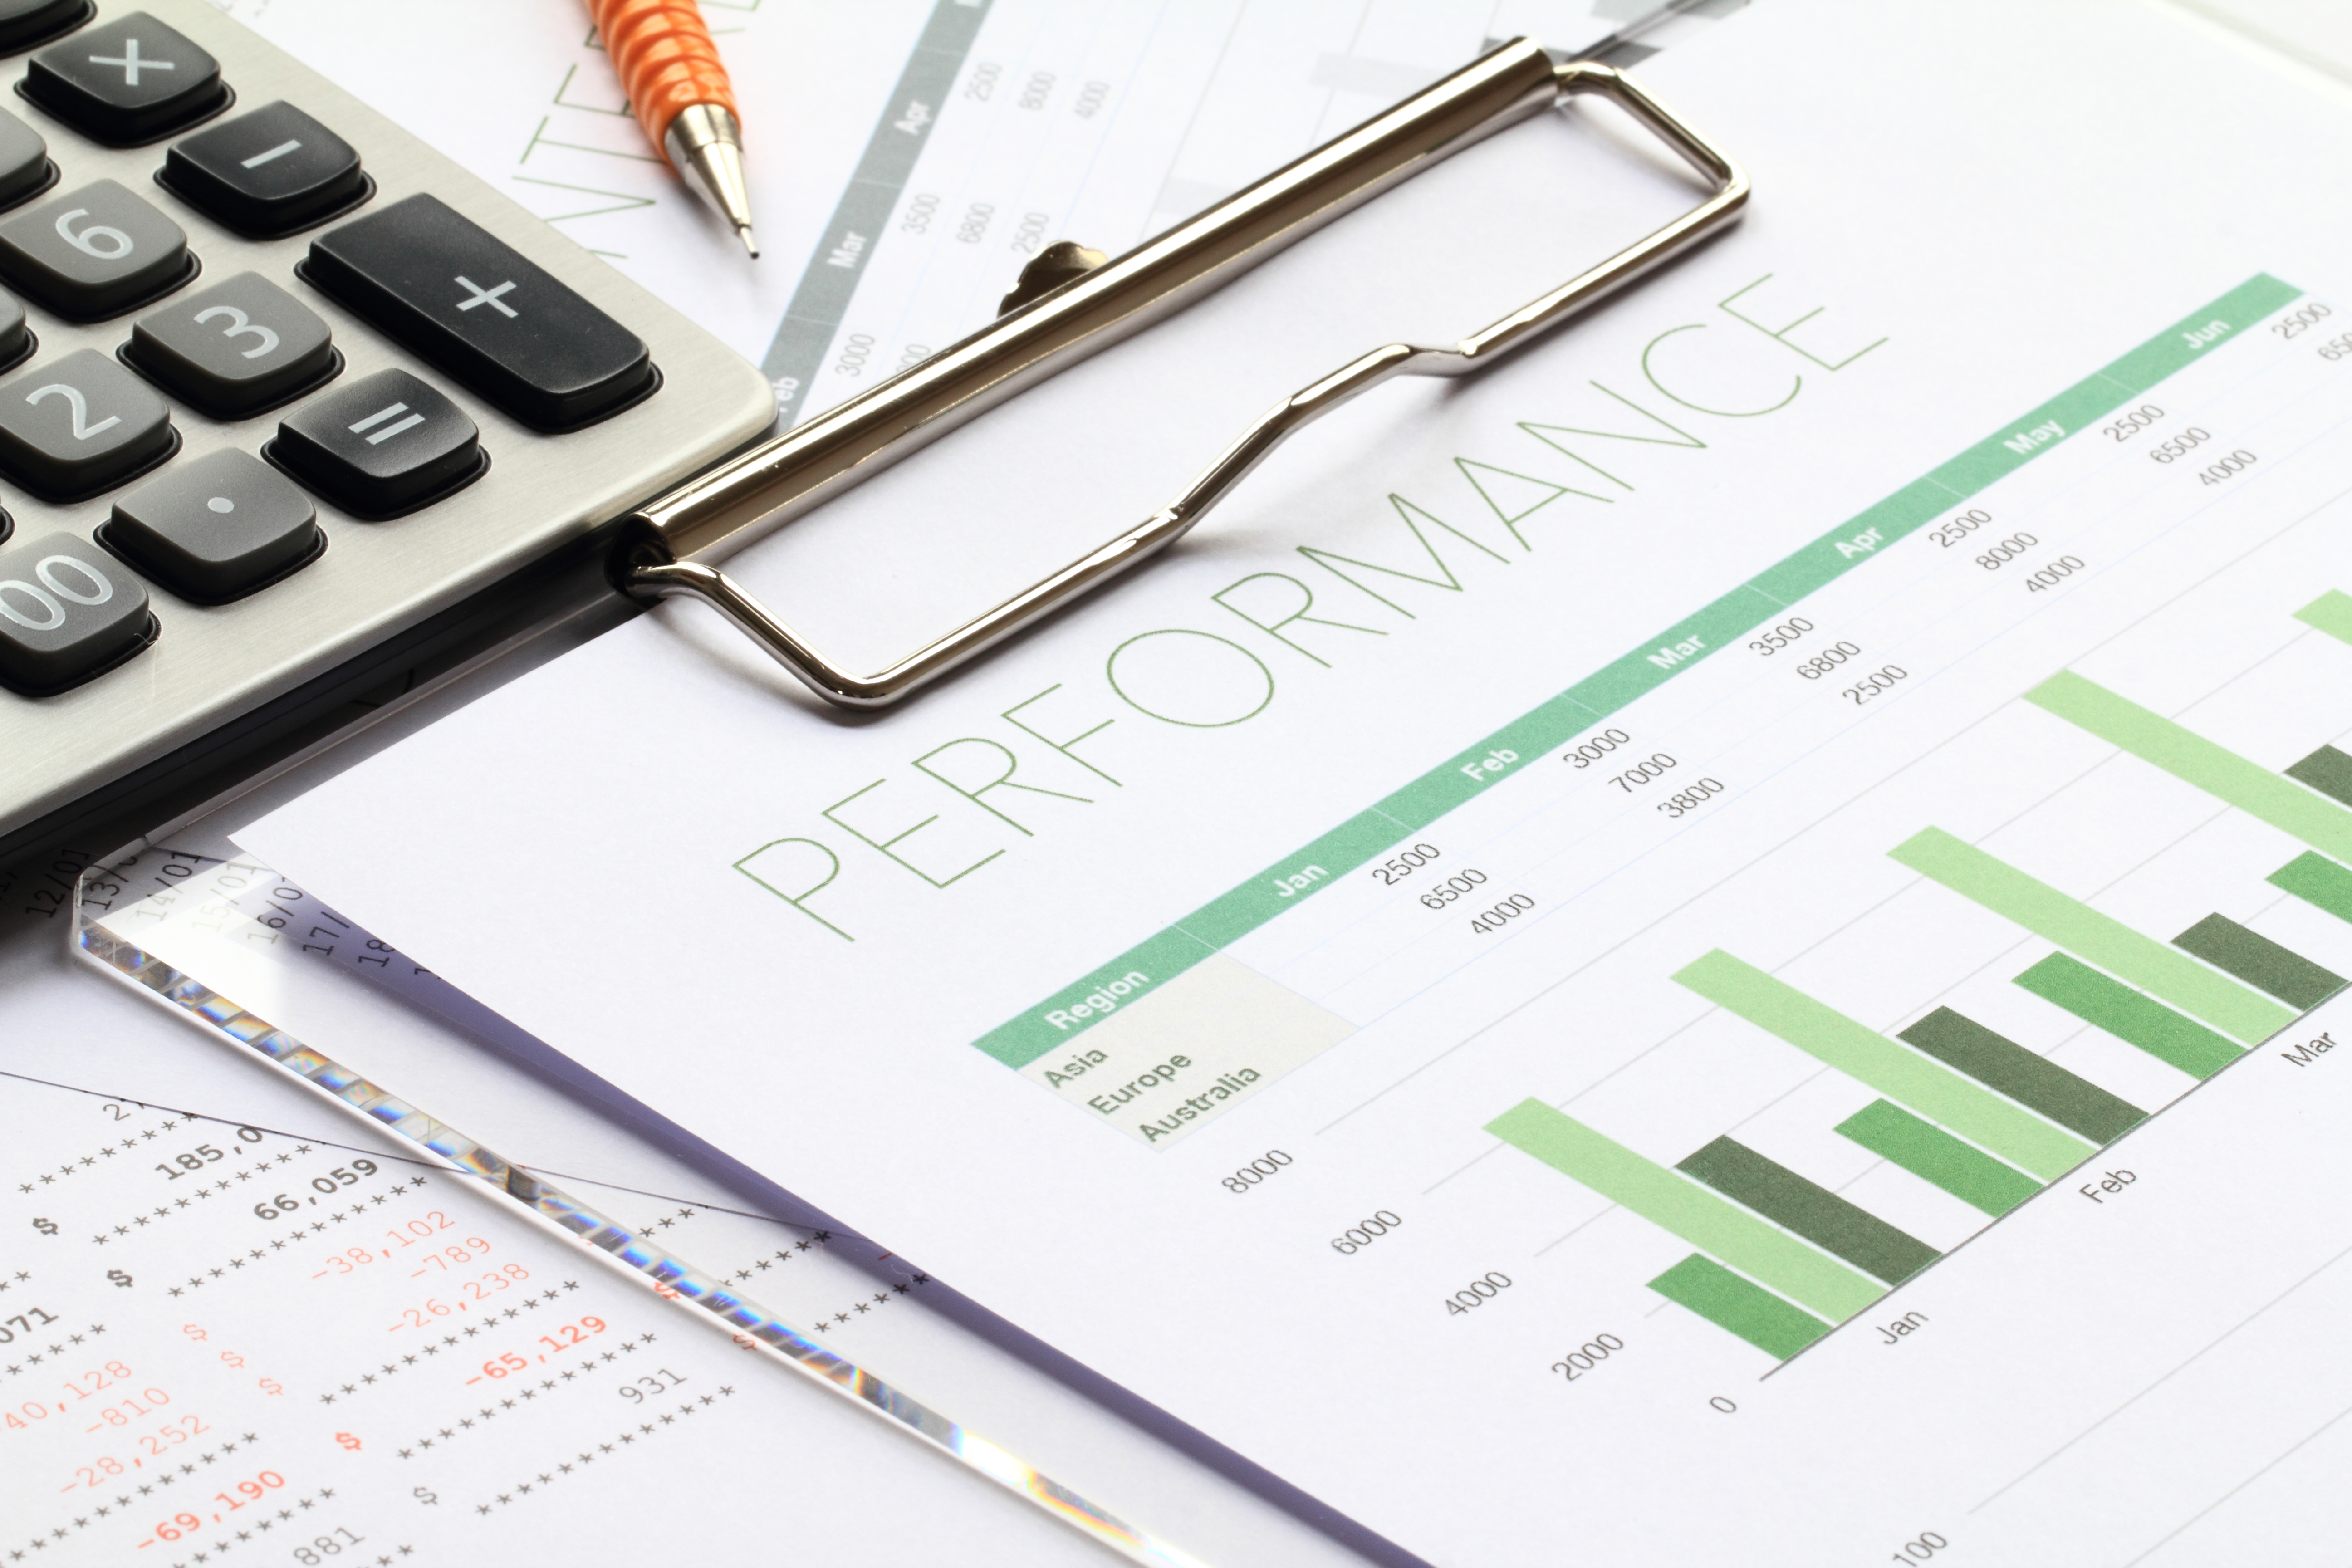 Business performance report for the first half of fiscal year